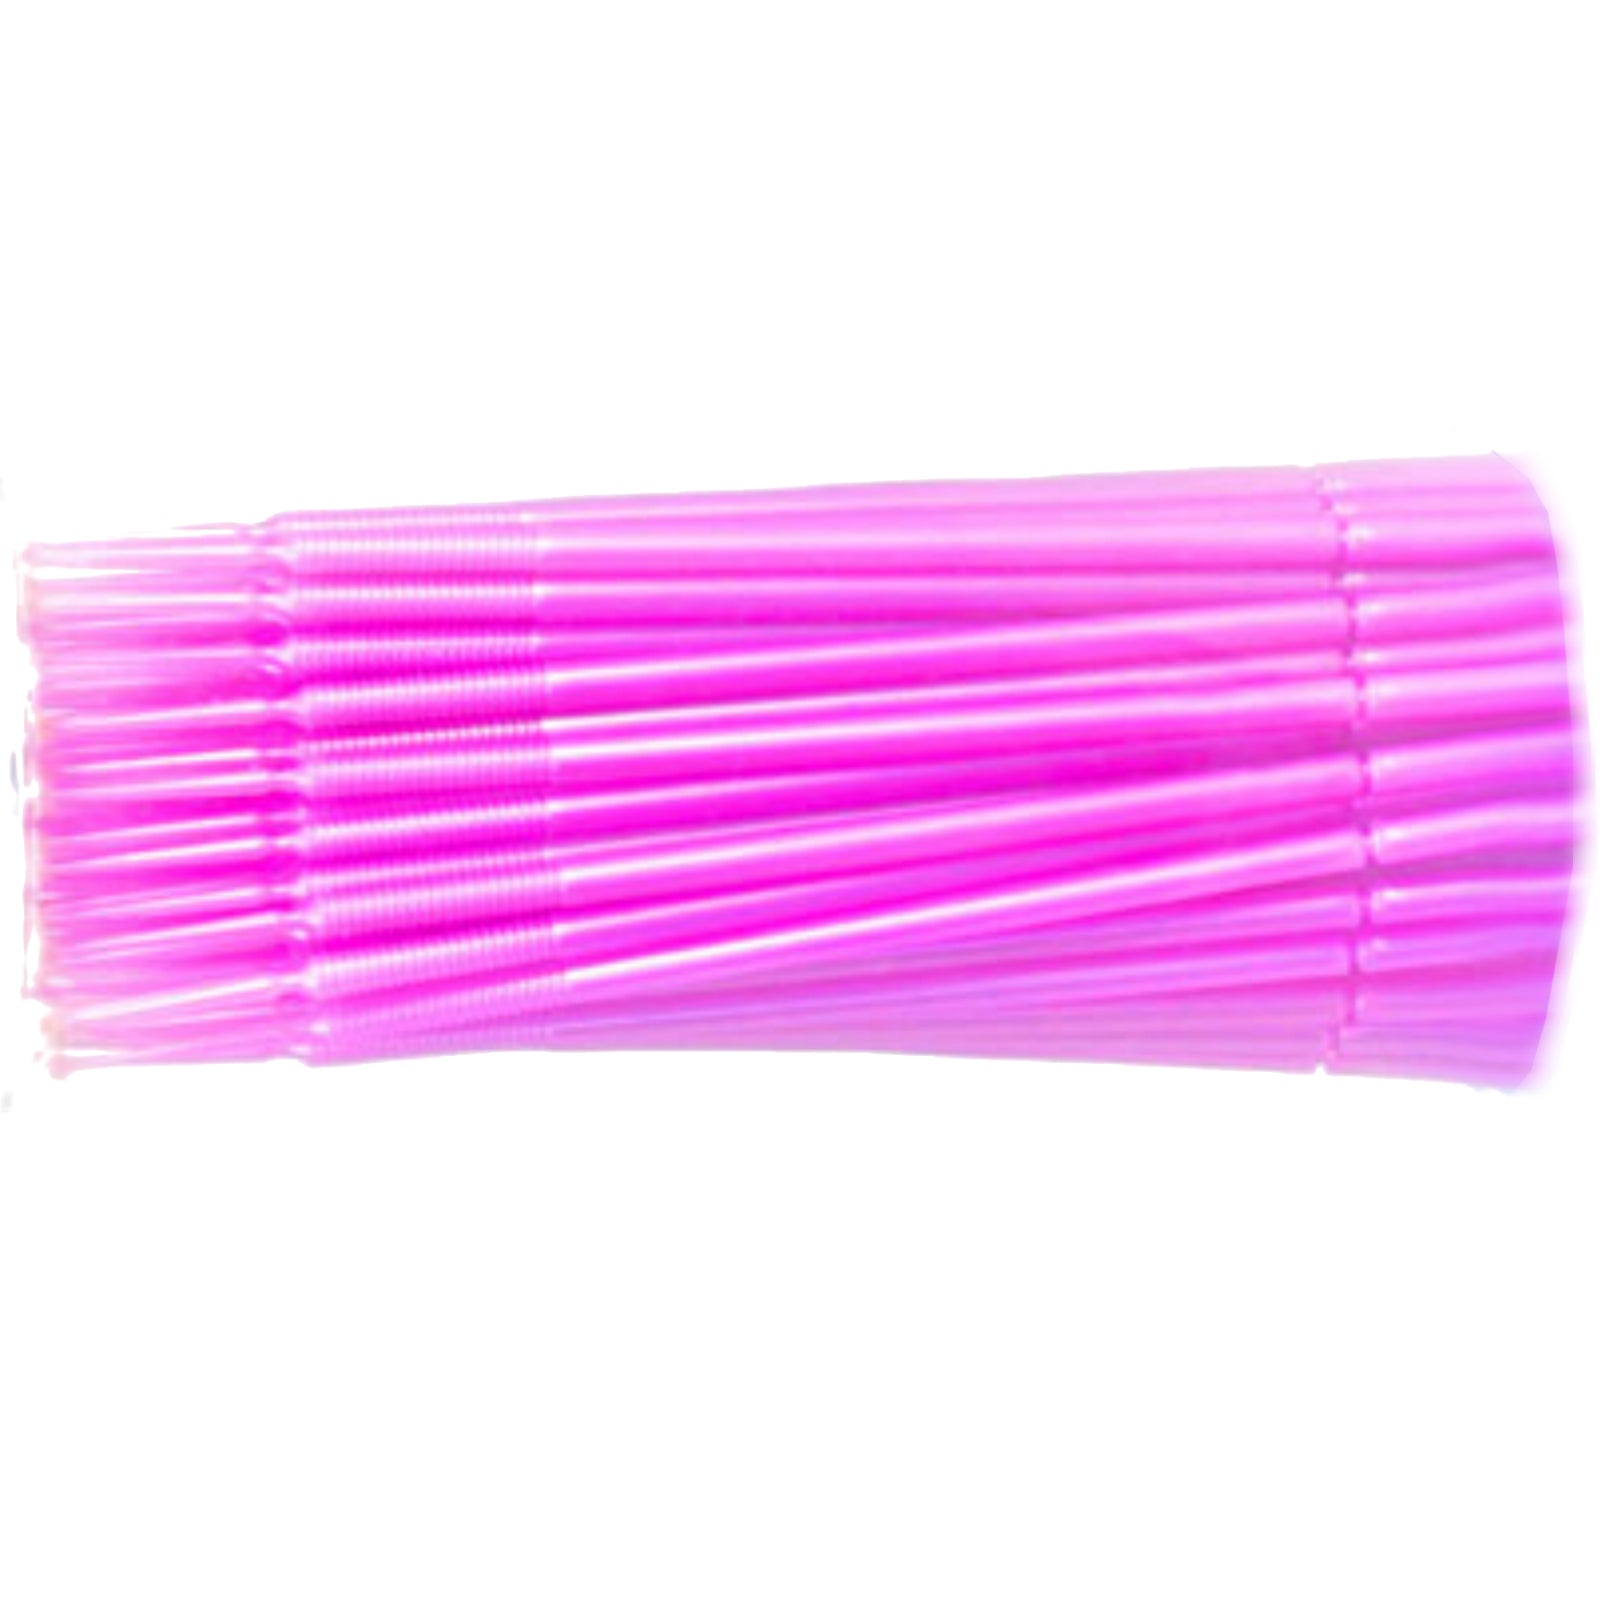 NYK1 Disposable Micro Swabs